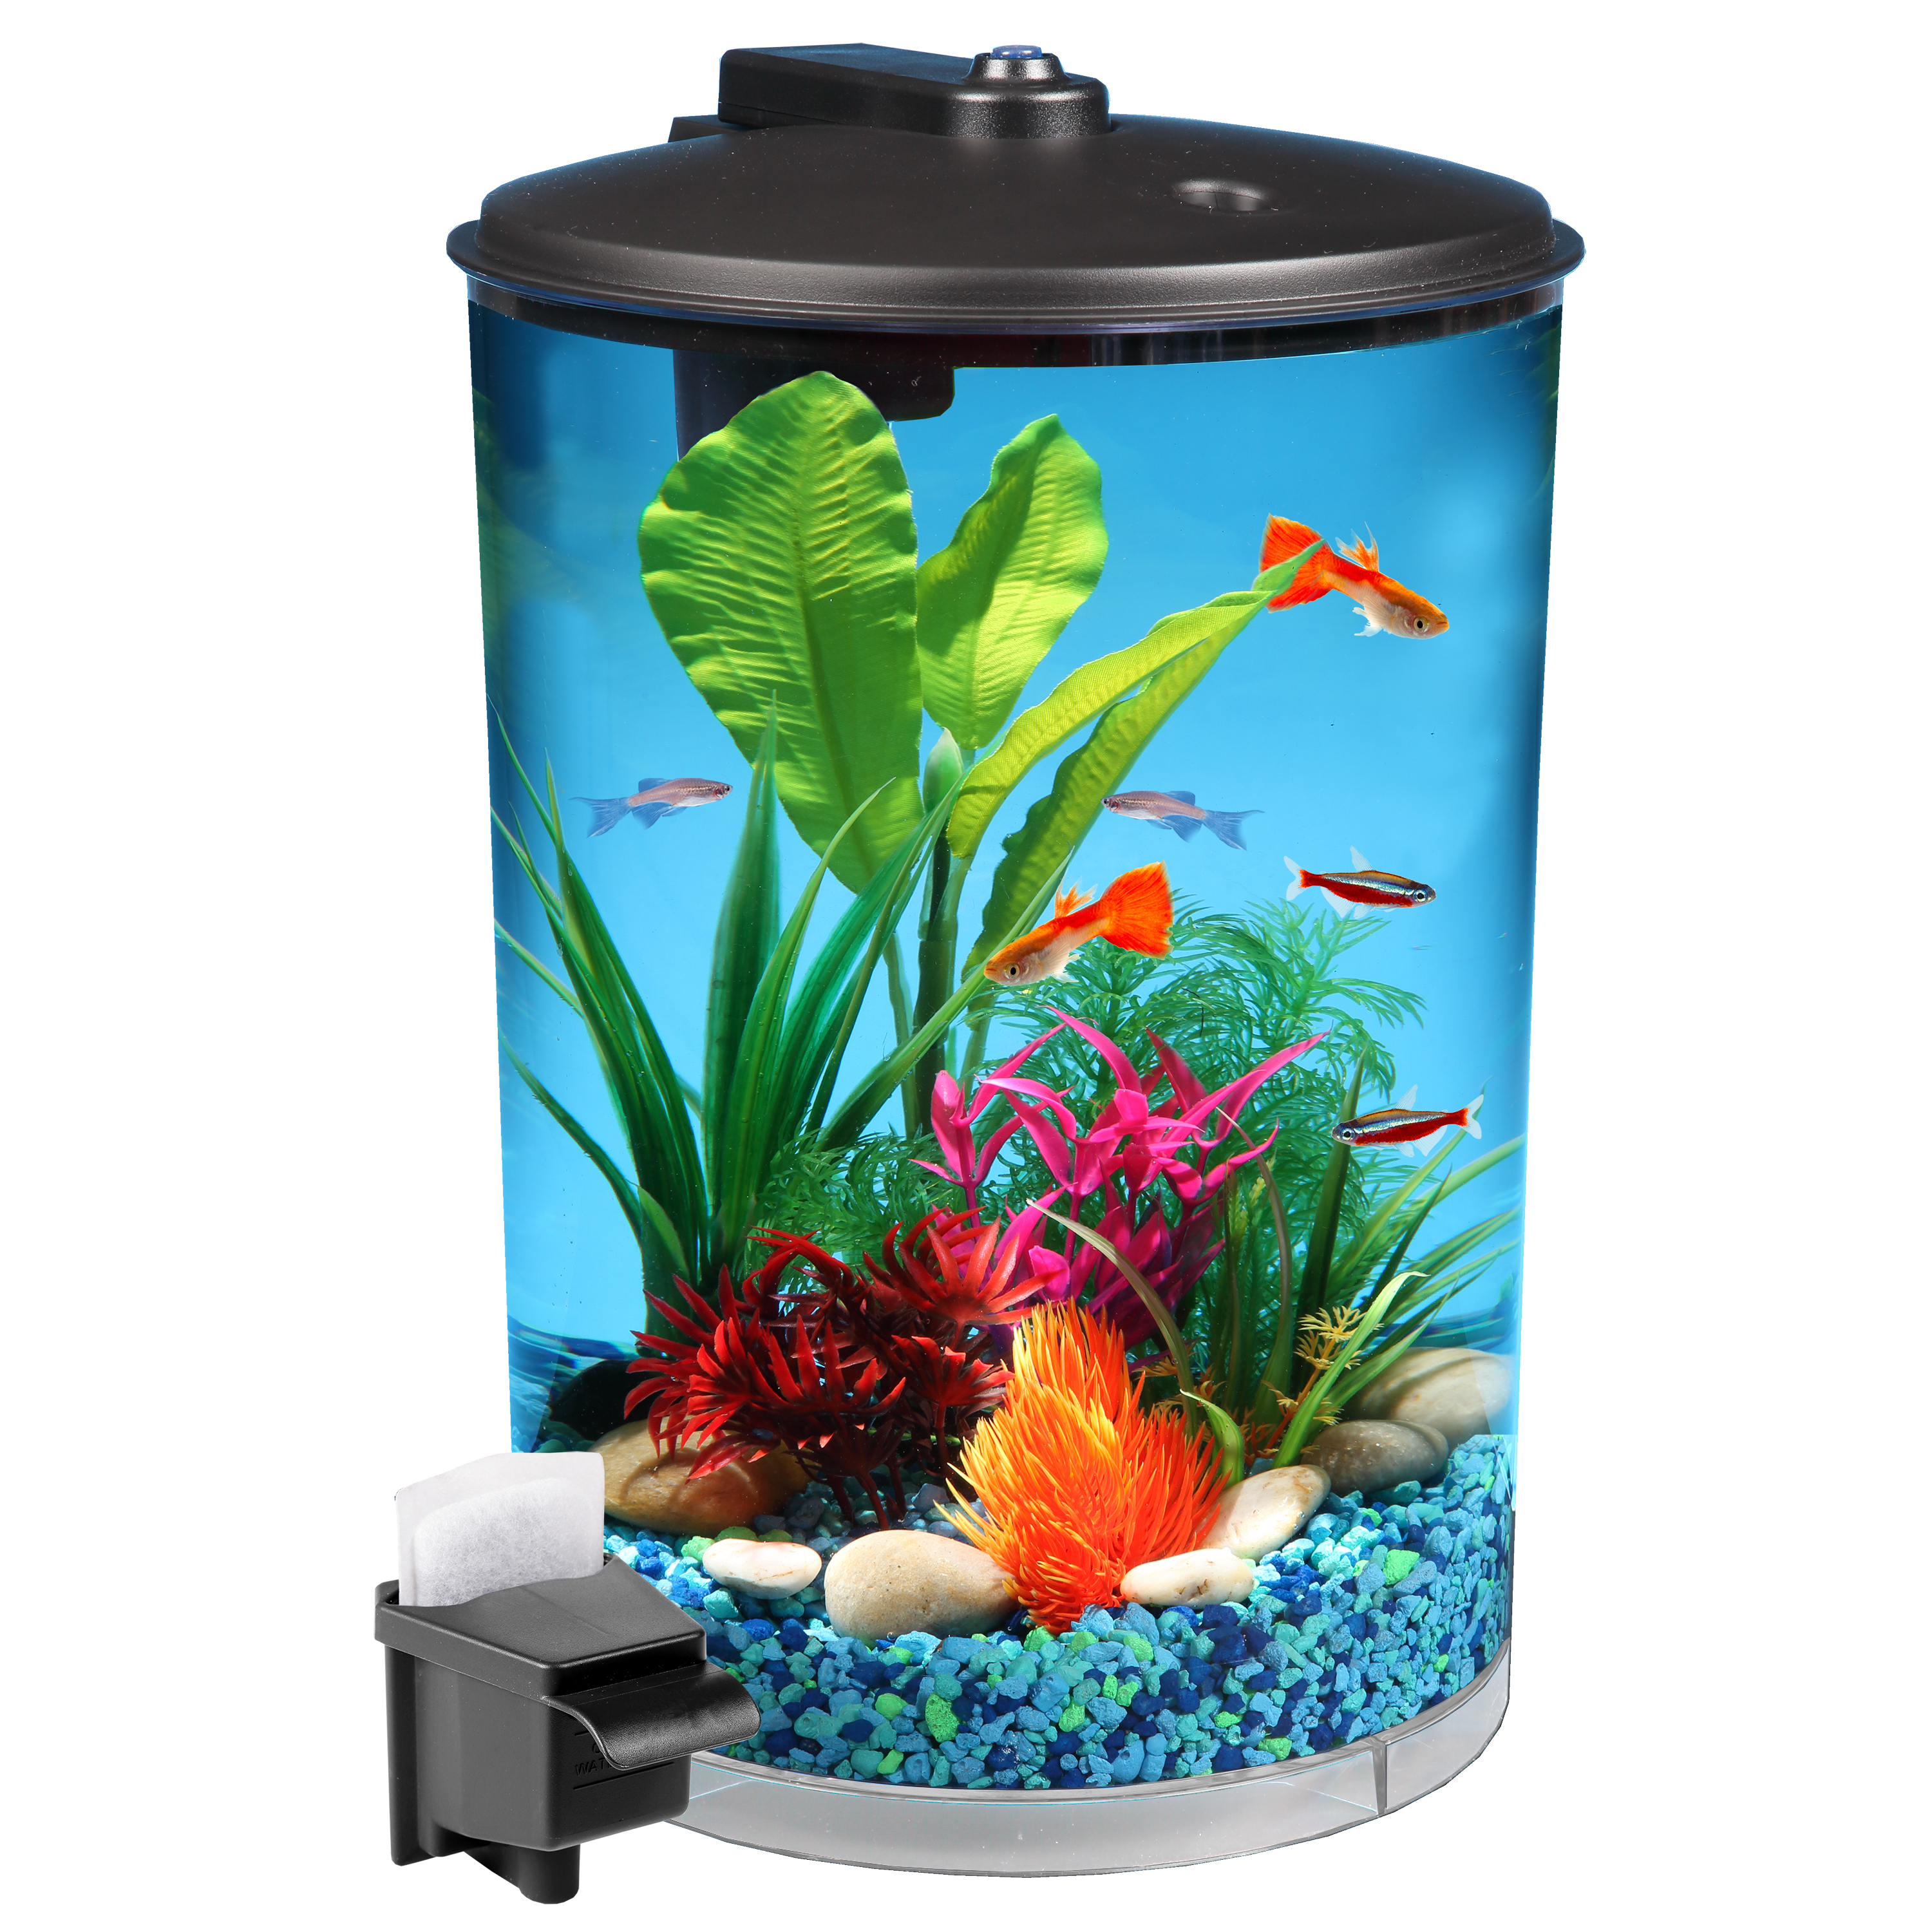 "Hawkeye 3-Gallon 360 View Aquarium Kit with LED Lighting and Filtration, 9.5"" L x 9.5"" W x 13.75"" H"